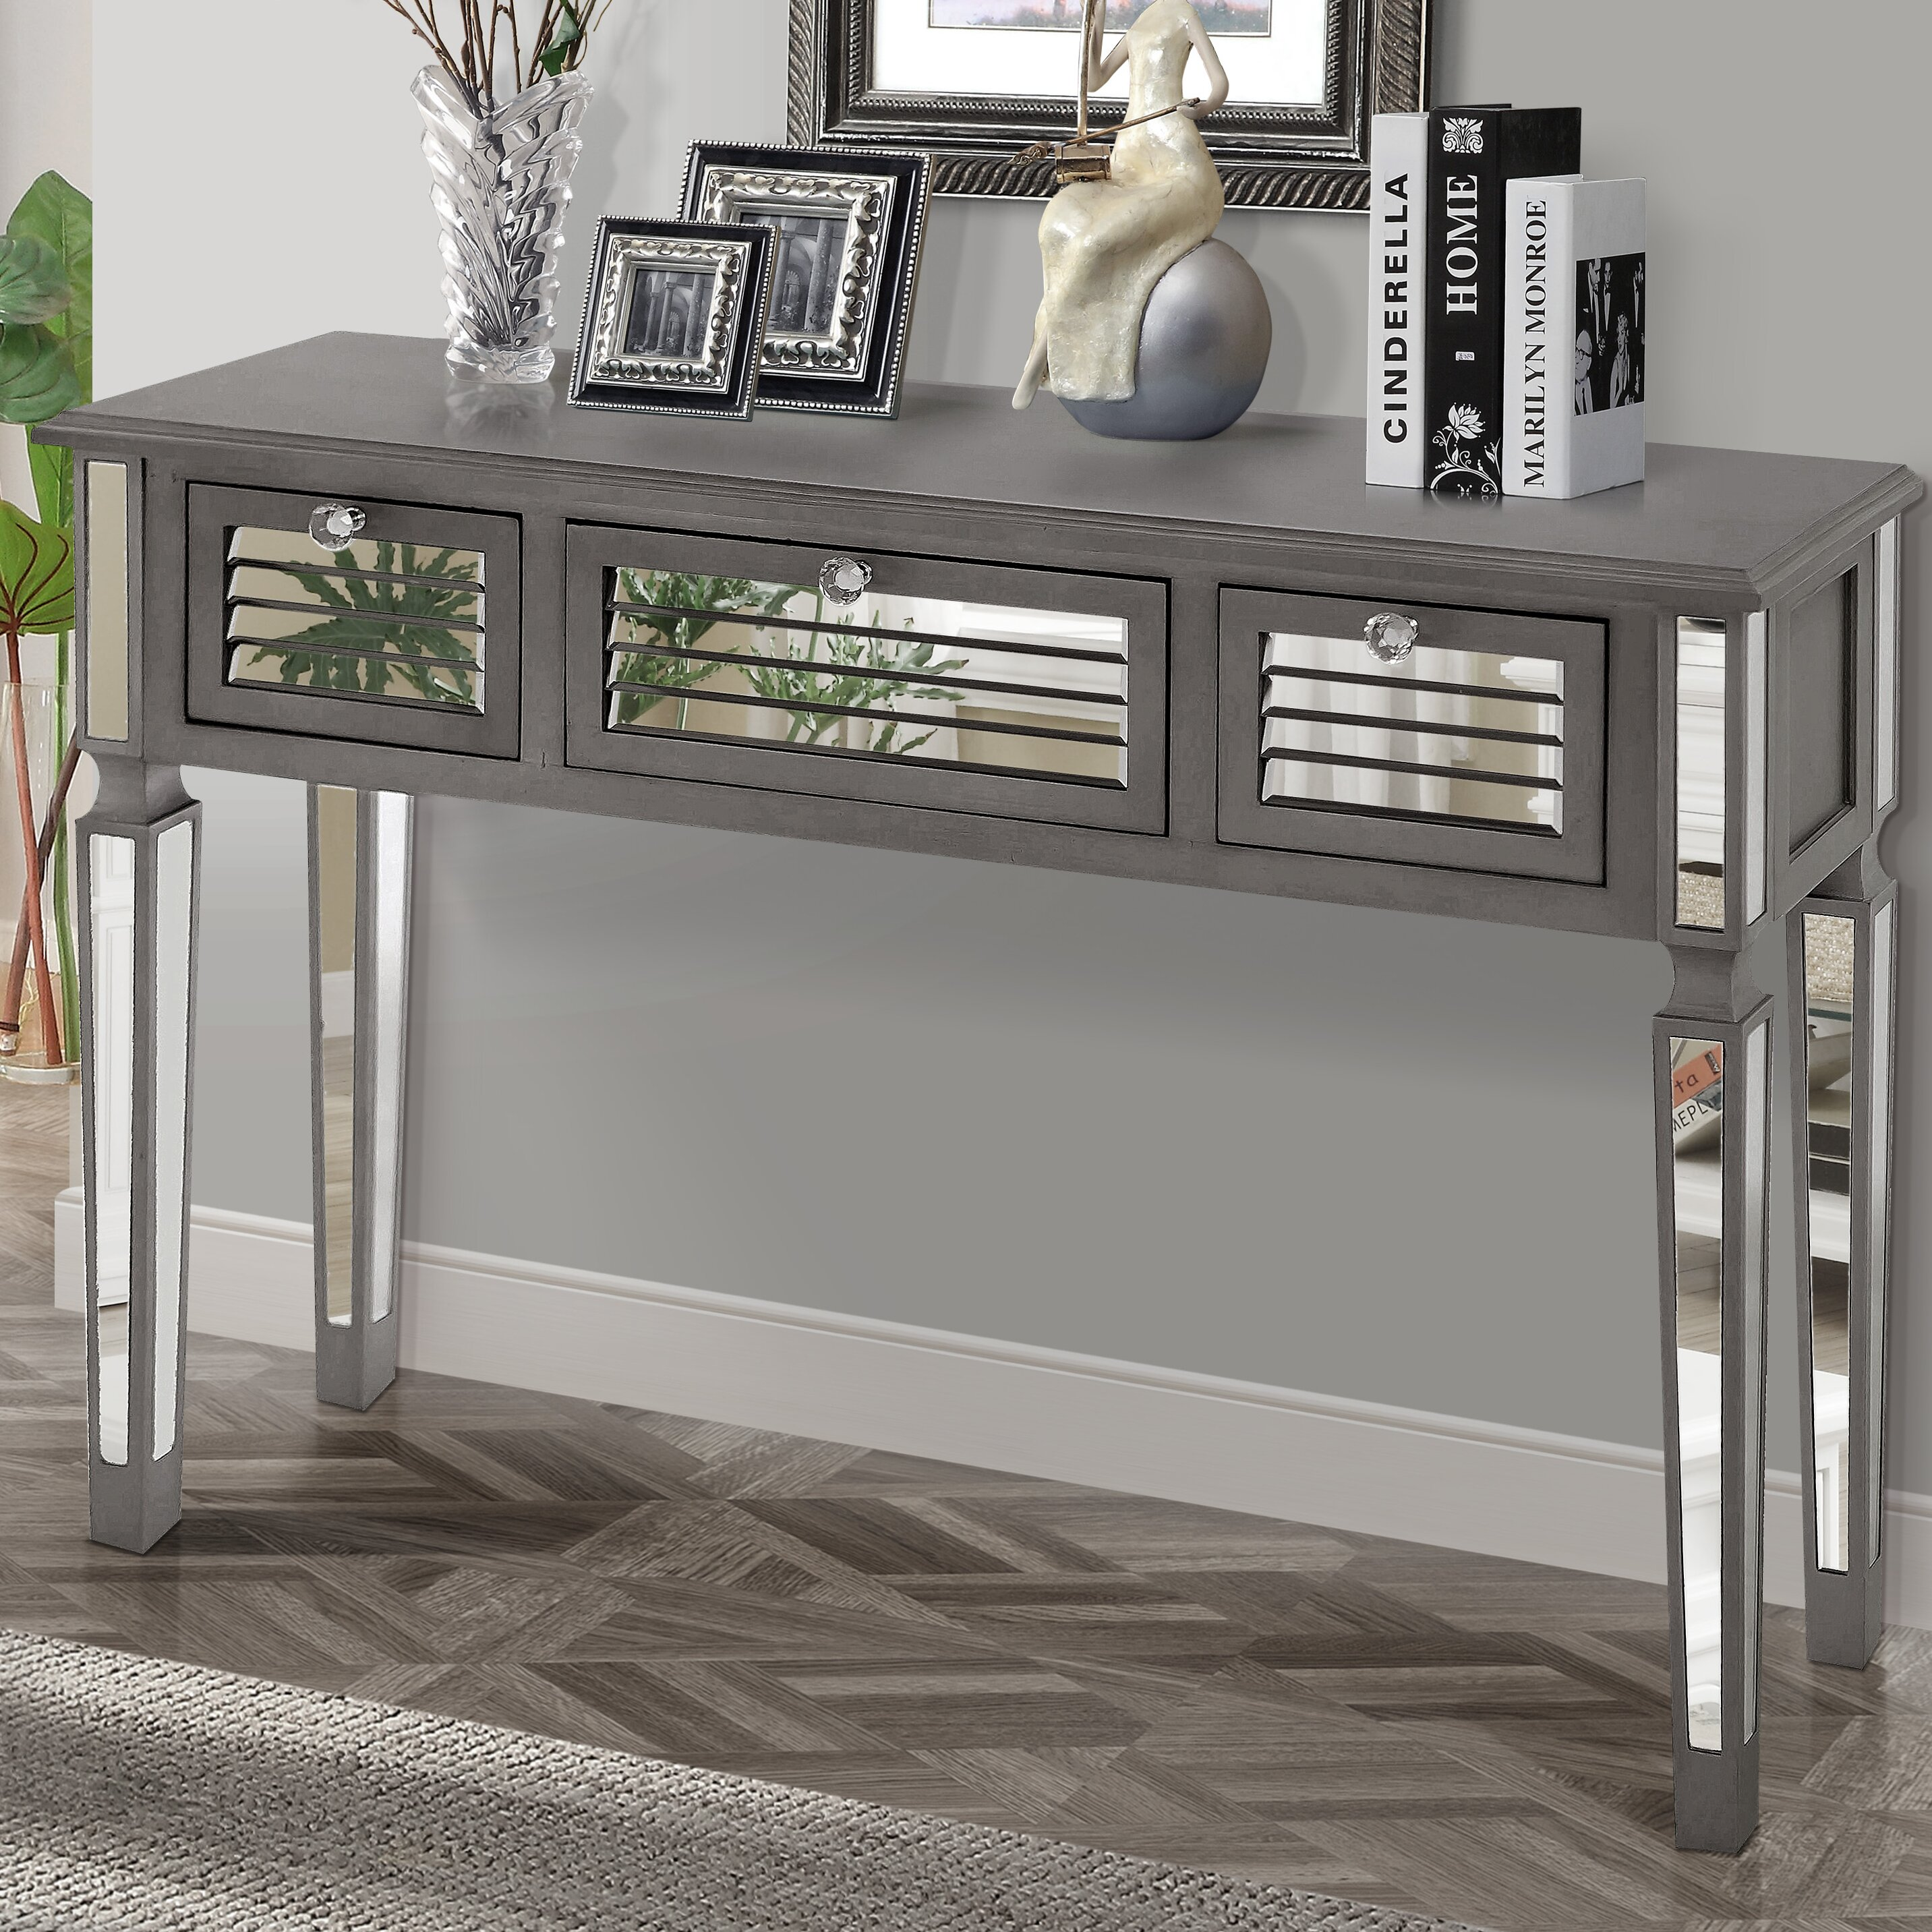 Gallerie Decor Summit Mirrored Console Table Reviews